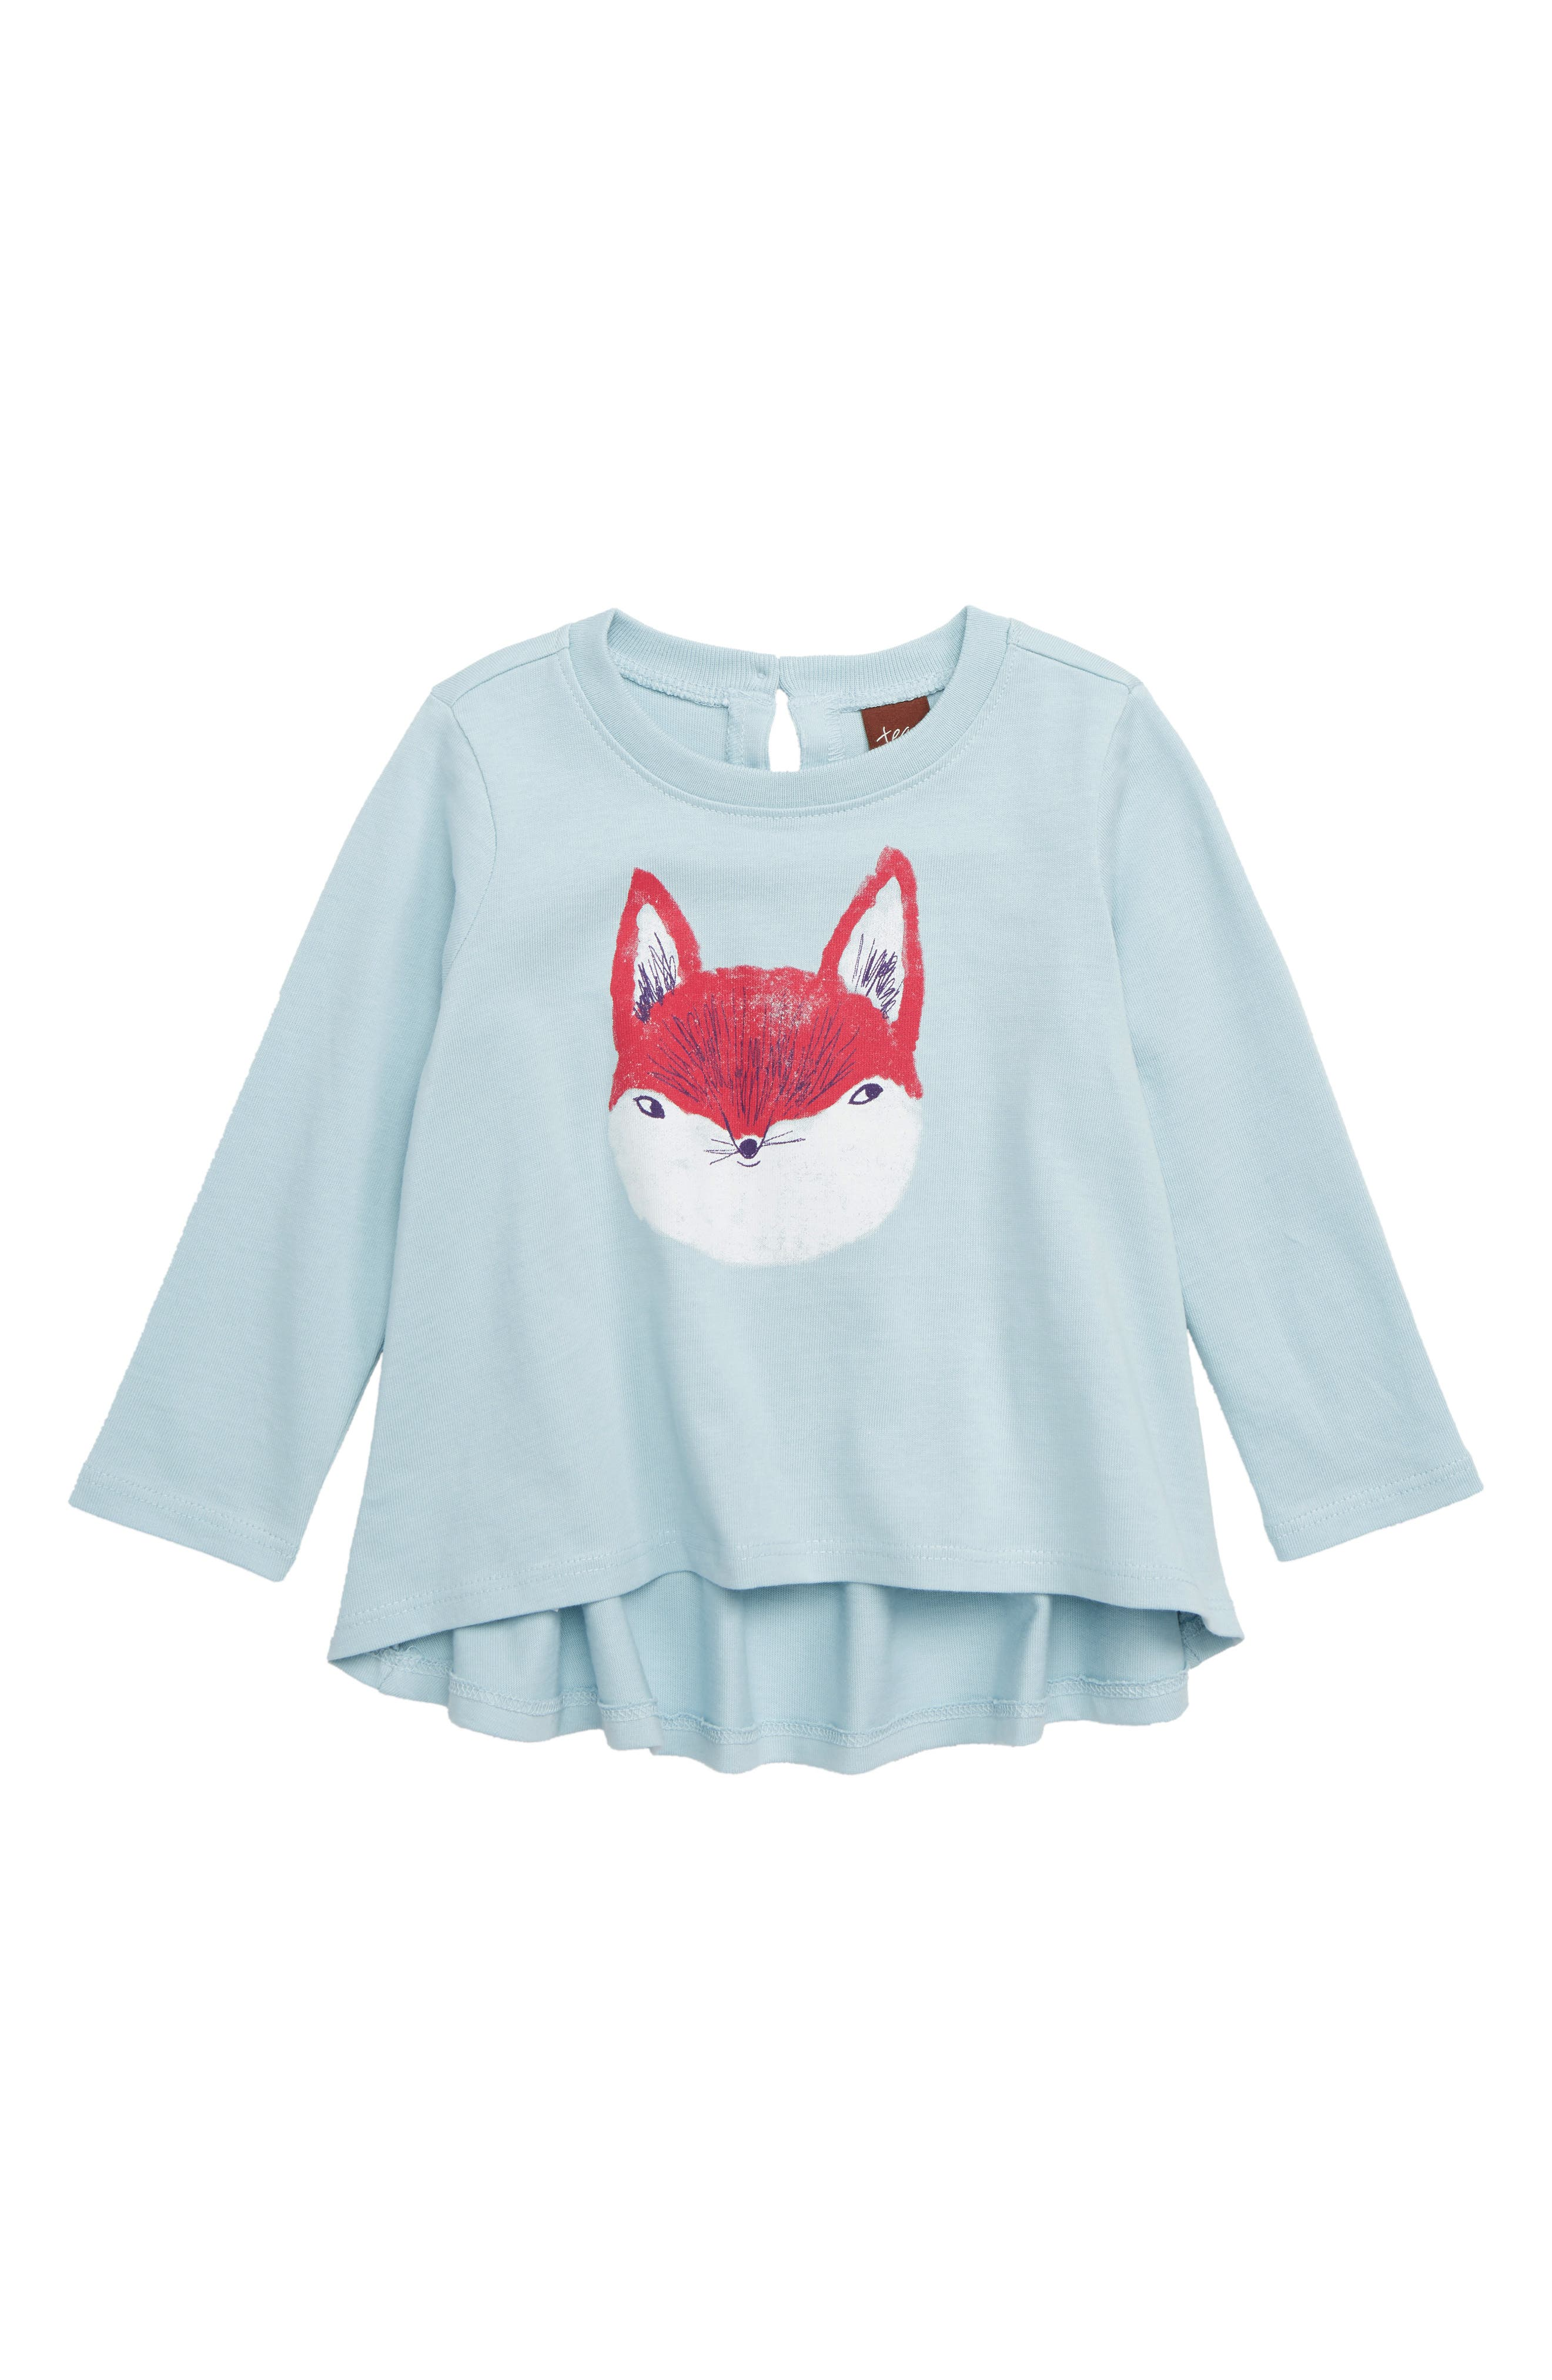 Friendly Fox Swing Top,                             Main thumbnail 1, color,                             STERLING BLUE